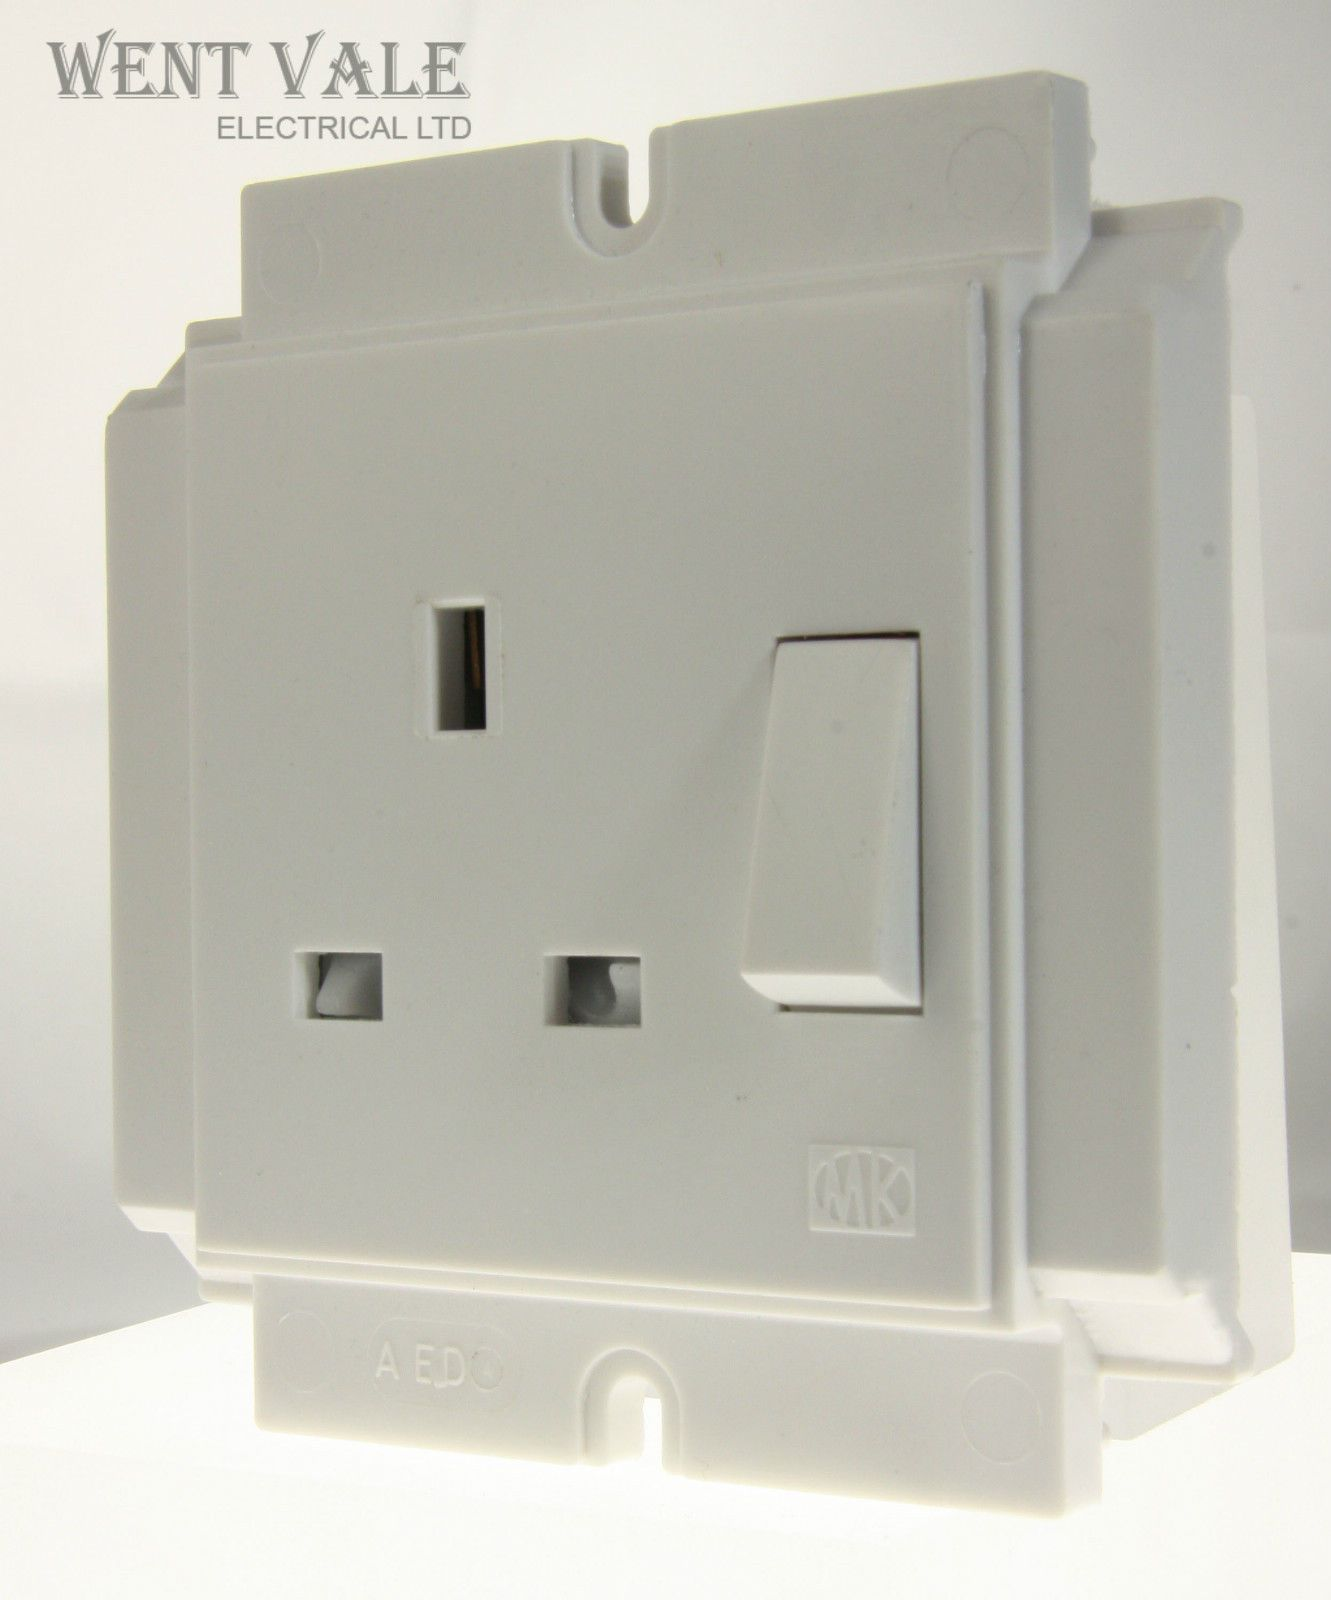 MK Powerlink Plus - 1952 WHI - 13a 1 Gang Switched Socket Wire-in ...